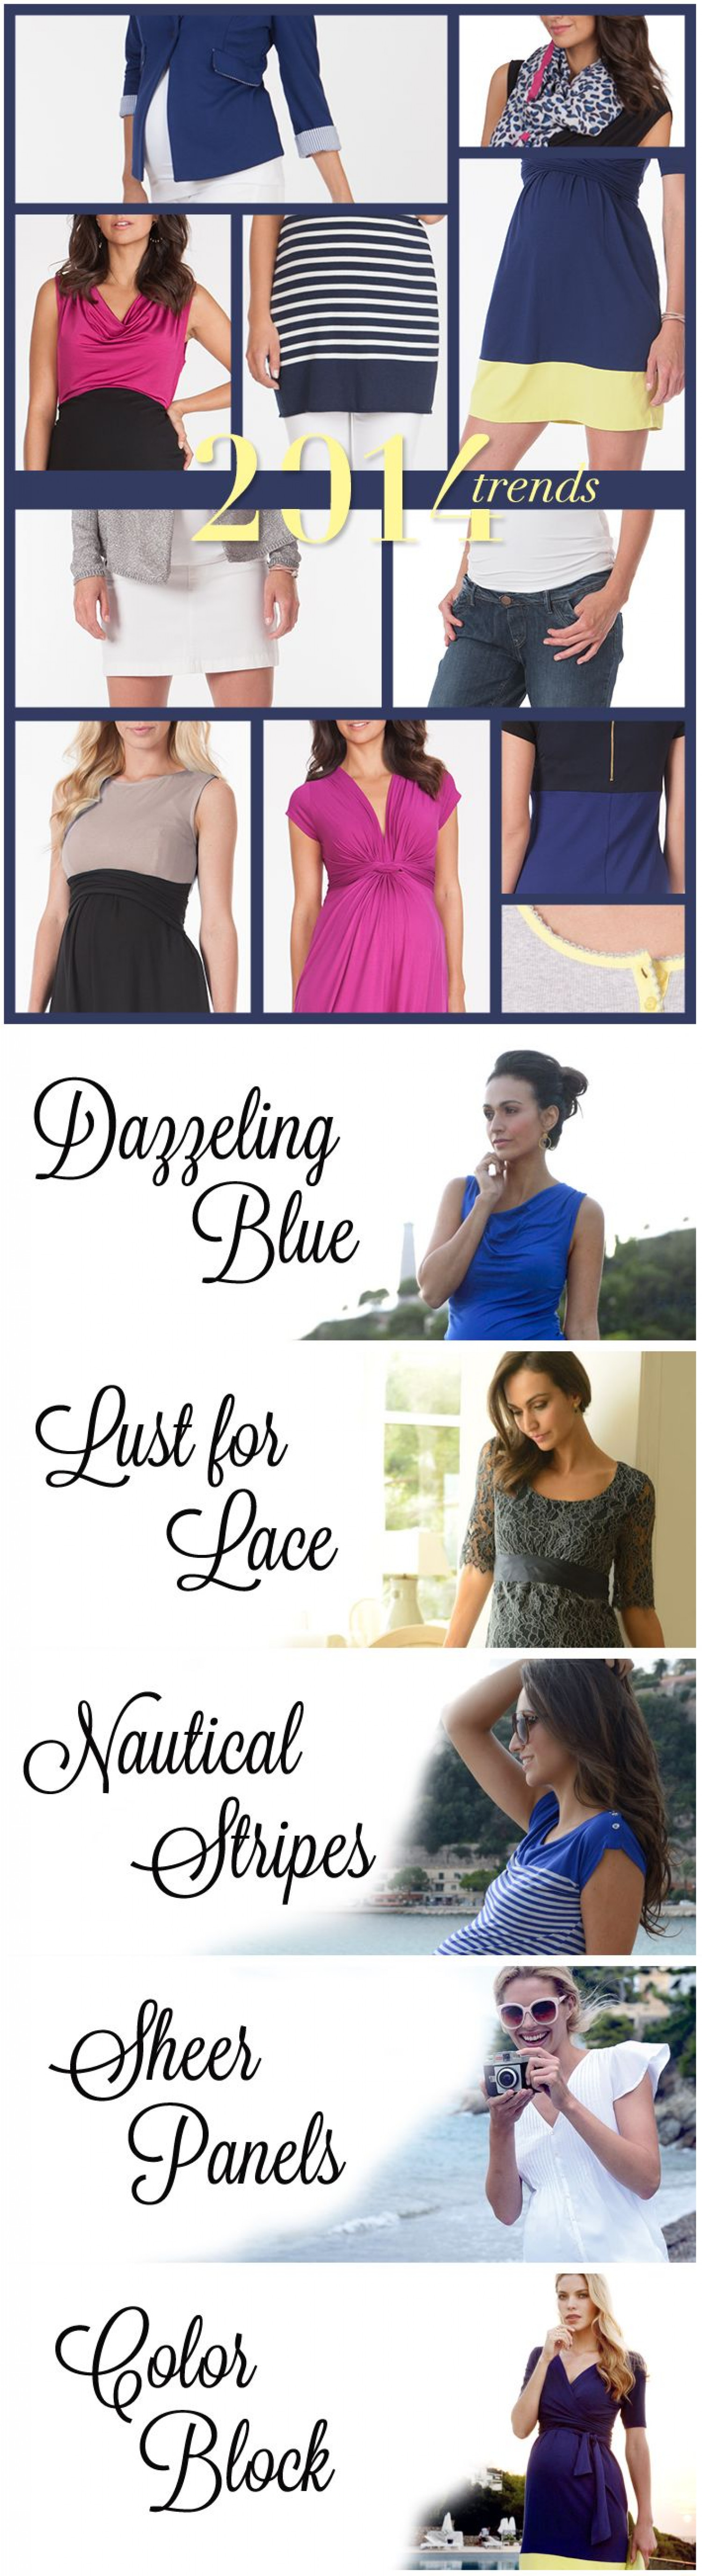 Mommylicious Maternity - Top 5 Maternity Fashion Trends in 2014 Infographic